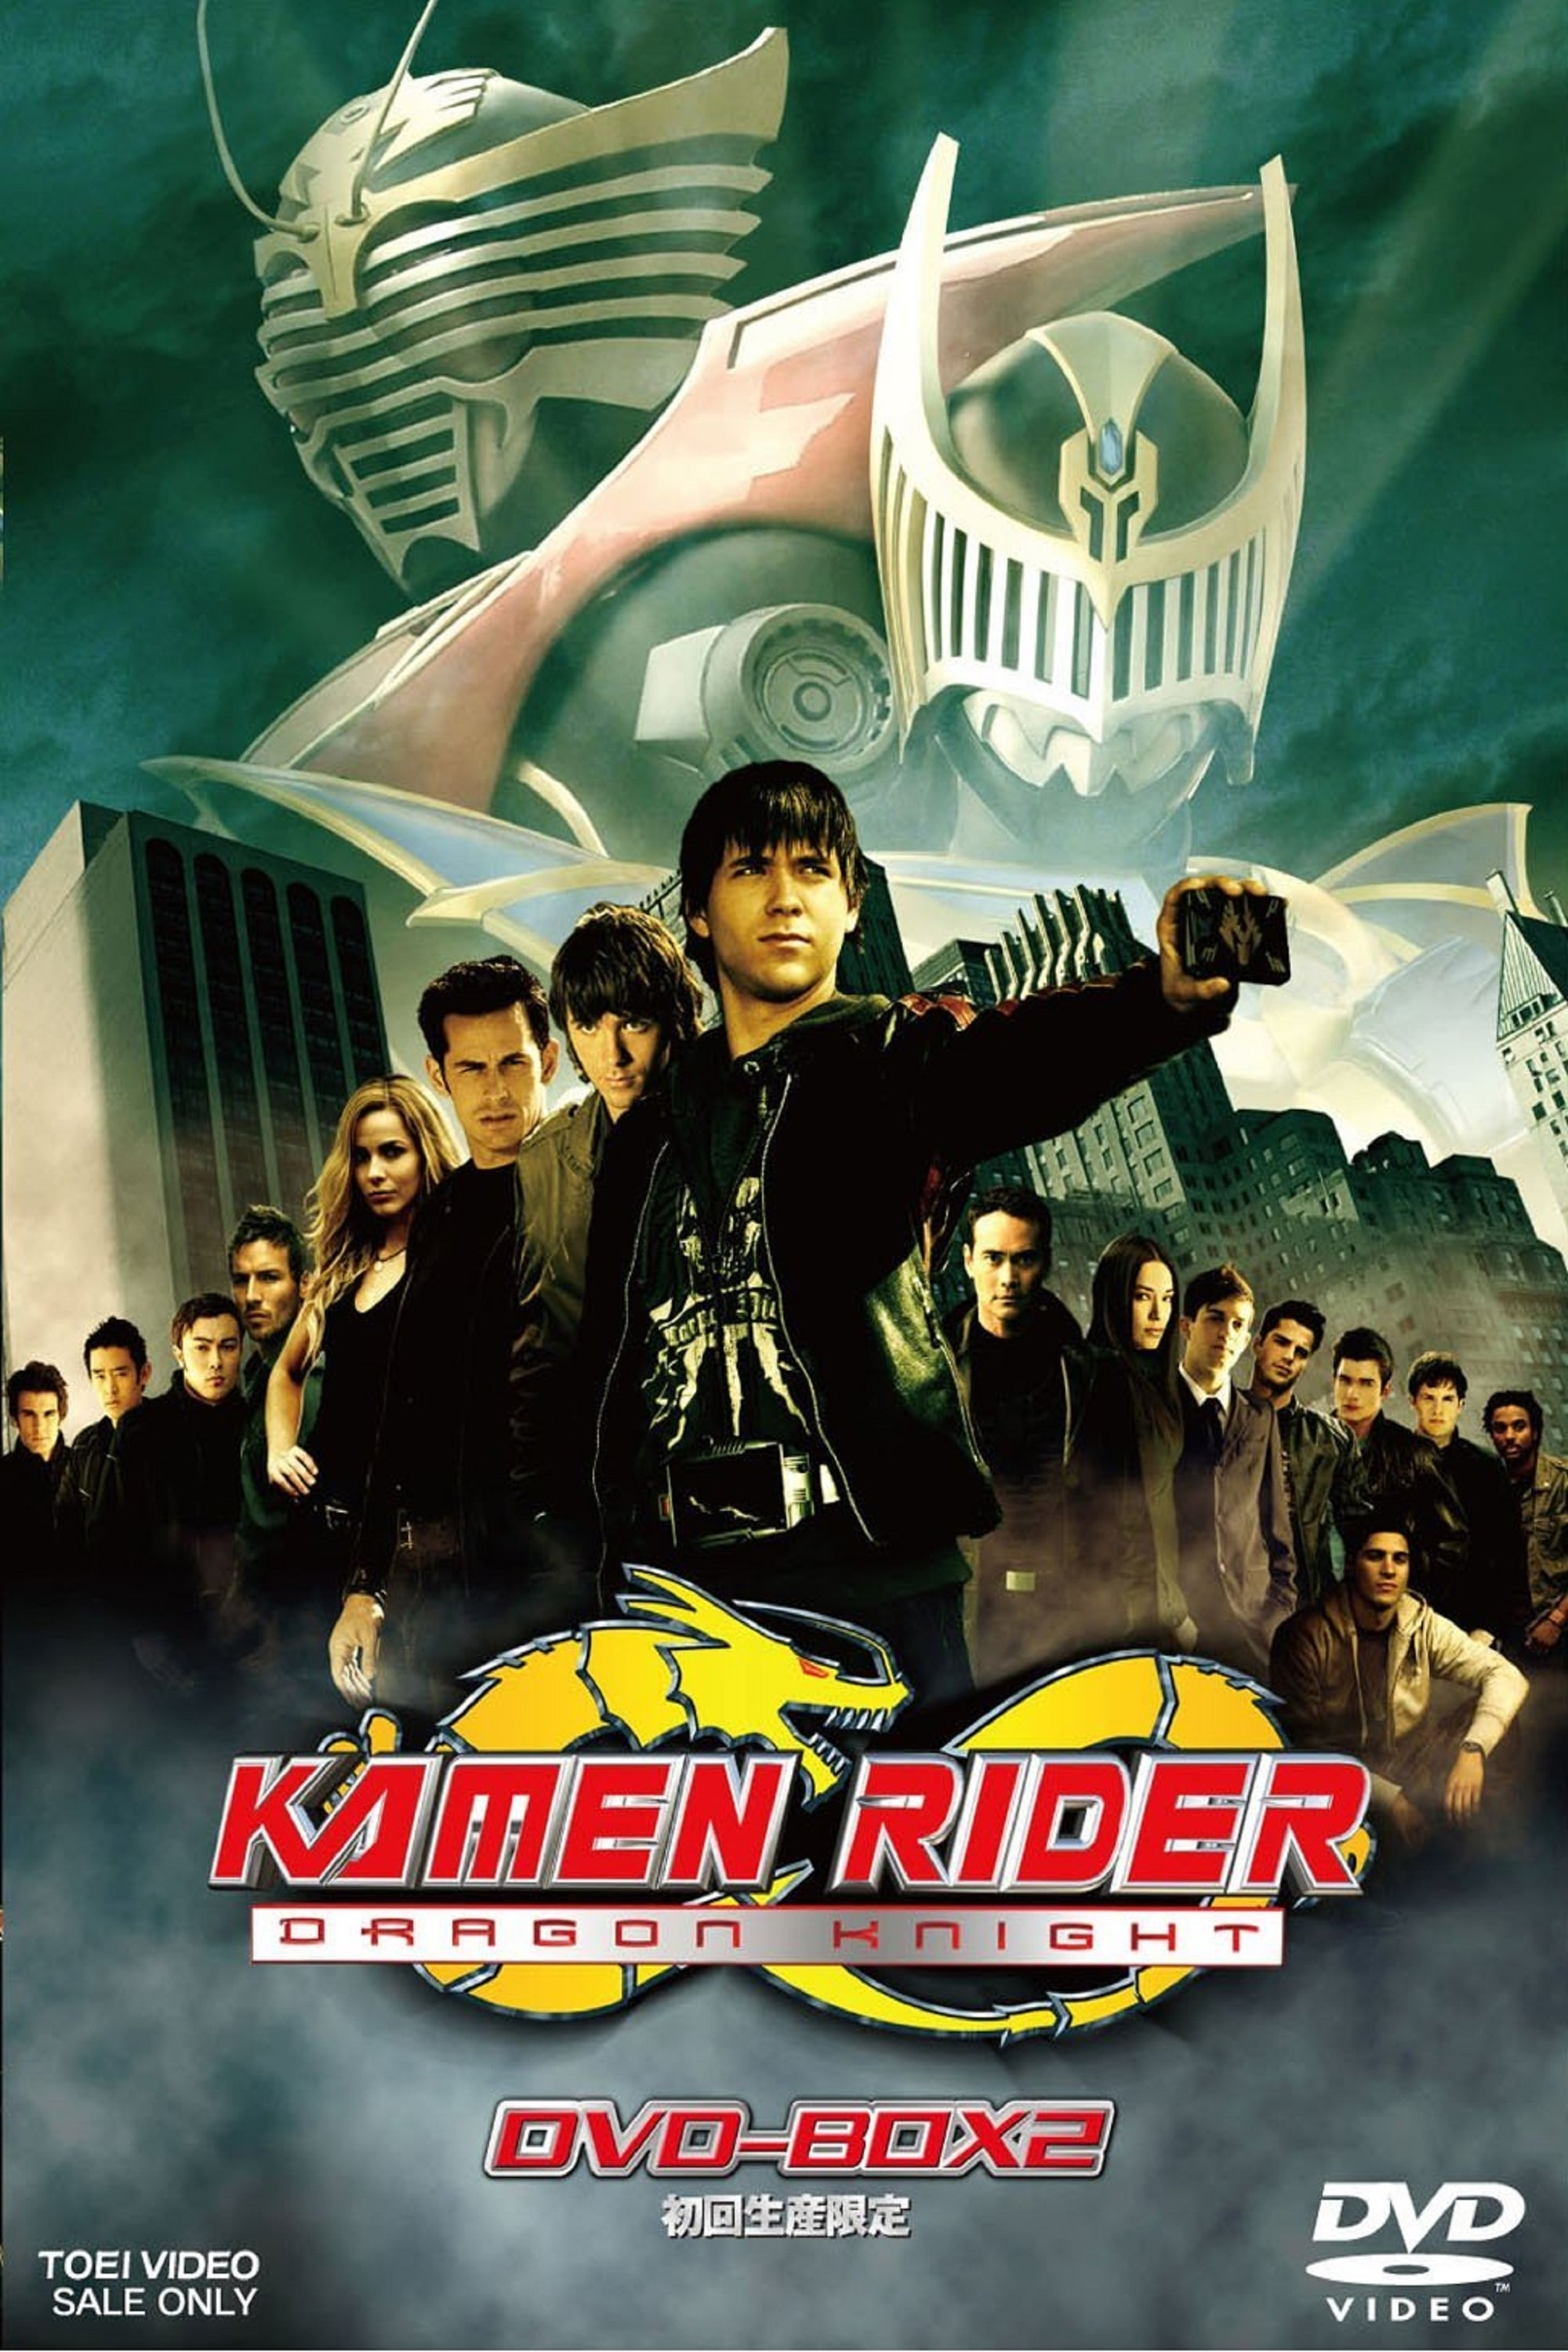 Kamen Rider Dragon Knight (2009)